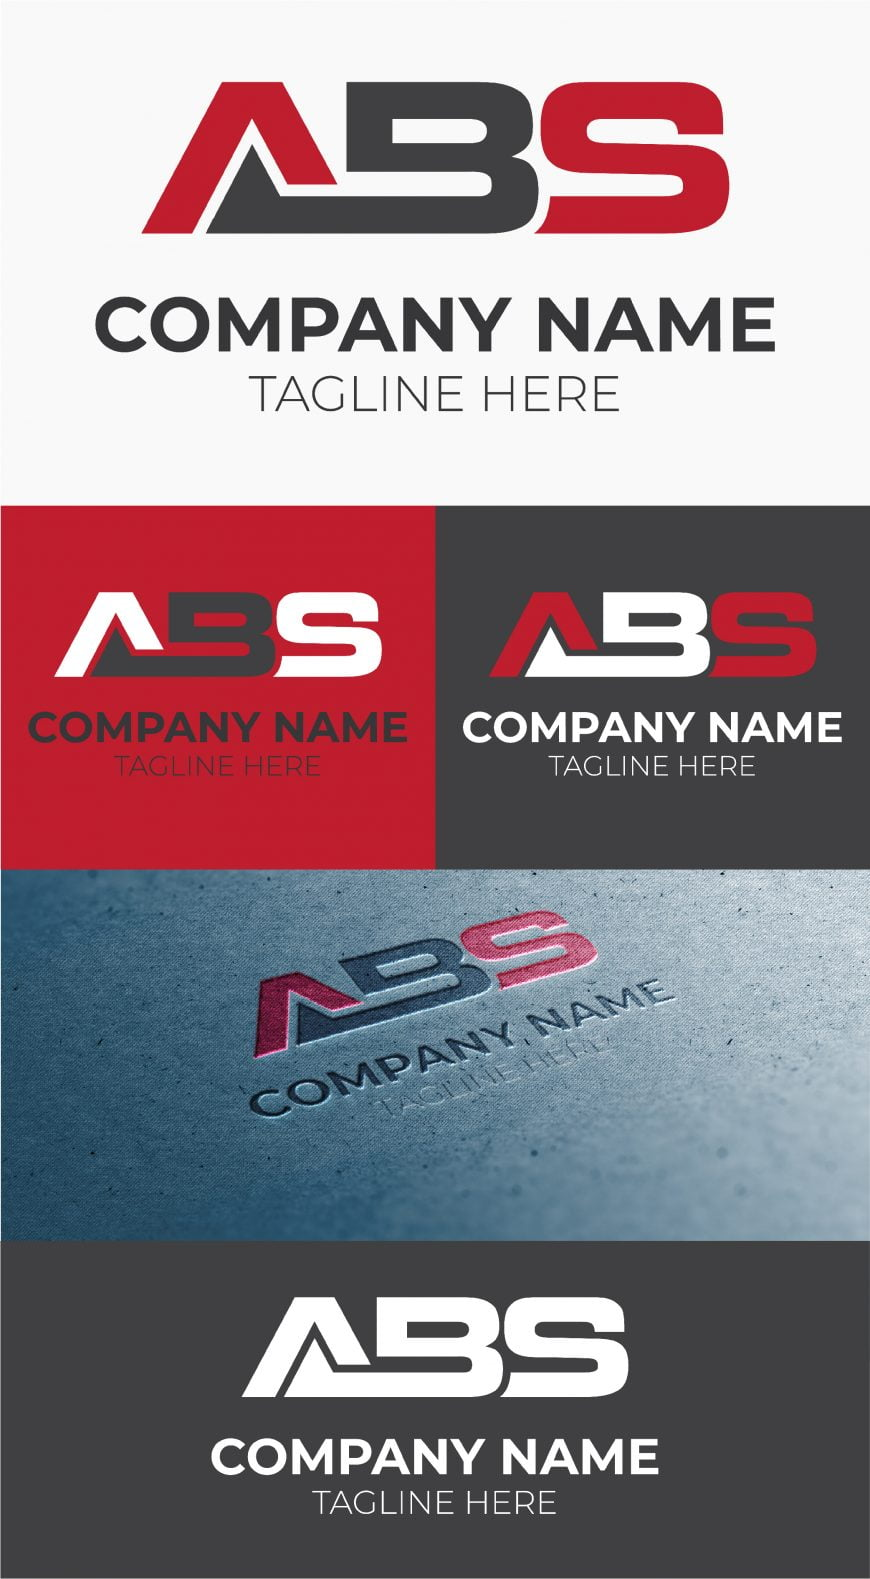 ABS-LETTER-LOGO-FREE-VECTOR-2-scaled